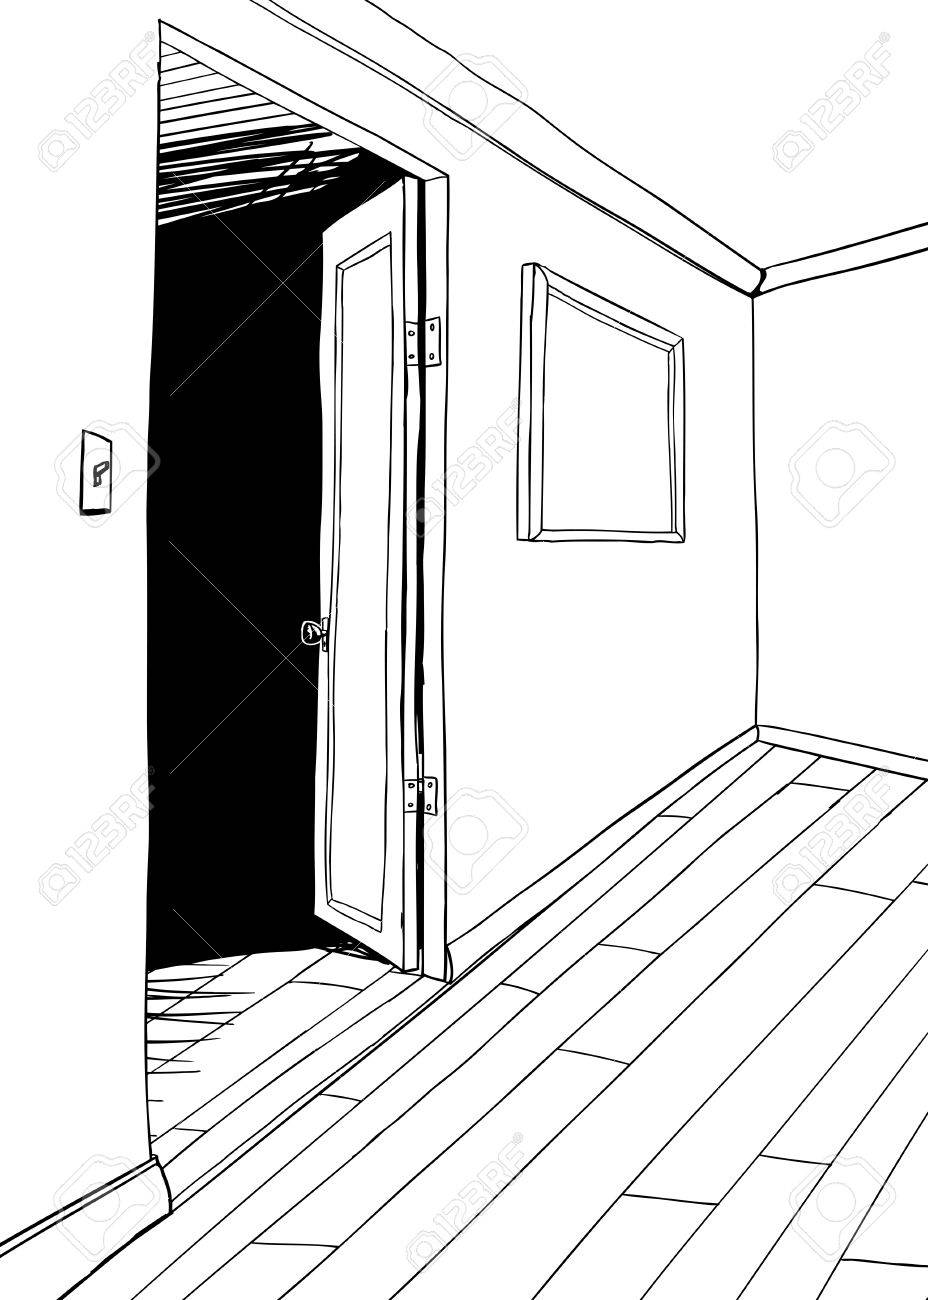 Outline Of Room With Dark Doorway And Picture Frame Royalty Free ...